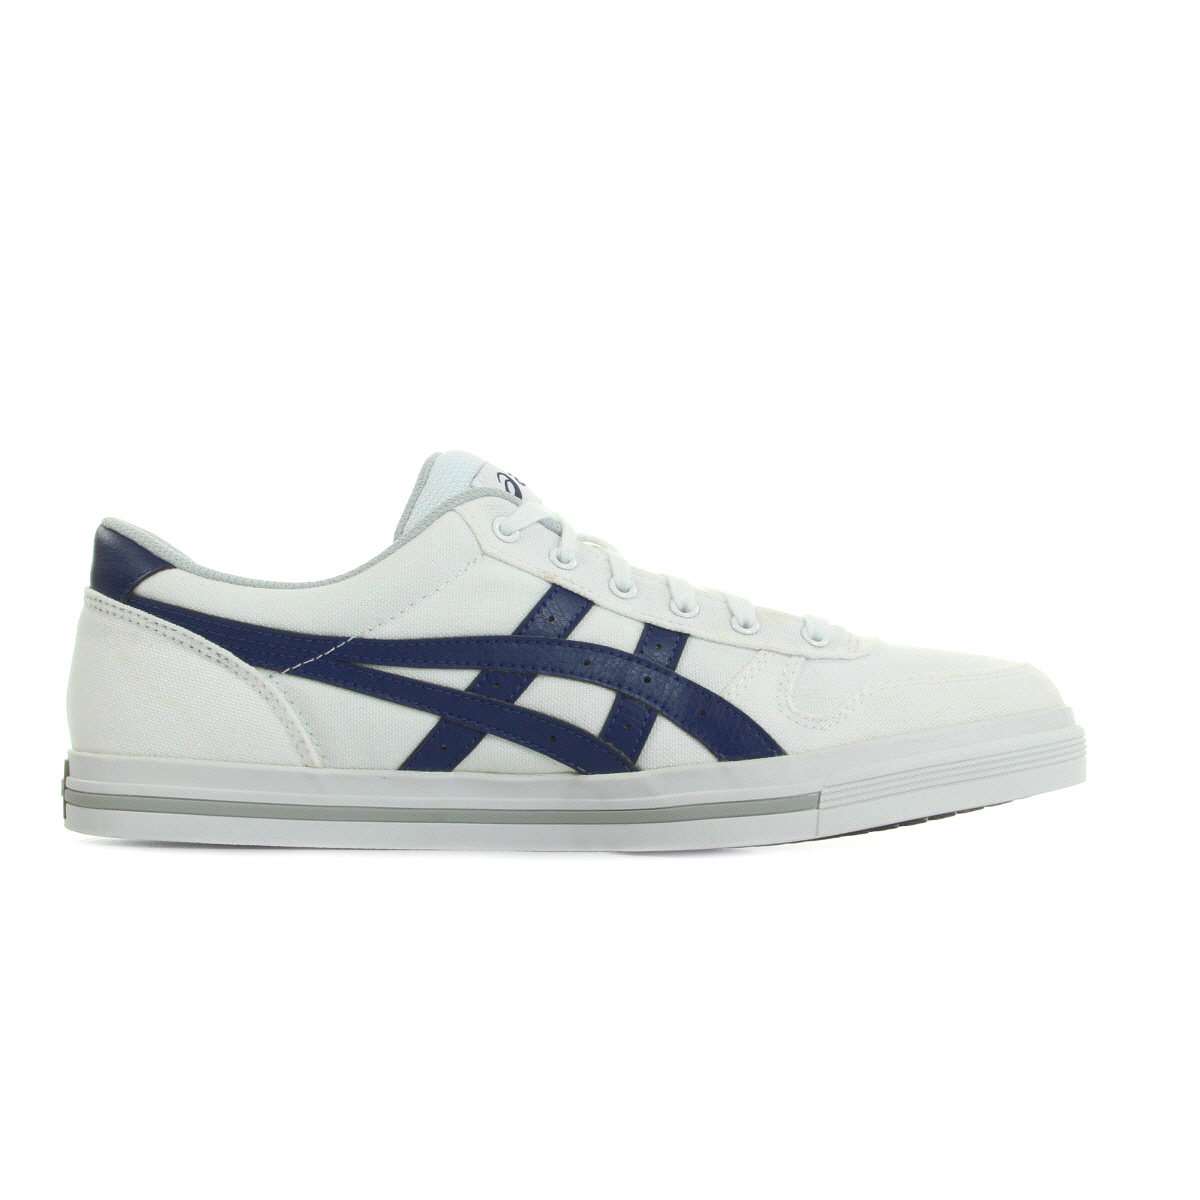 Details about Chaussures Baskets Asics homme Aaron White Blue taille Blanc Blanche Textile